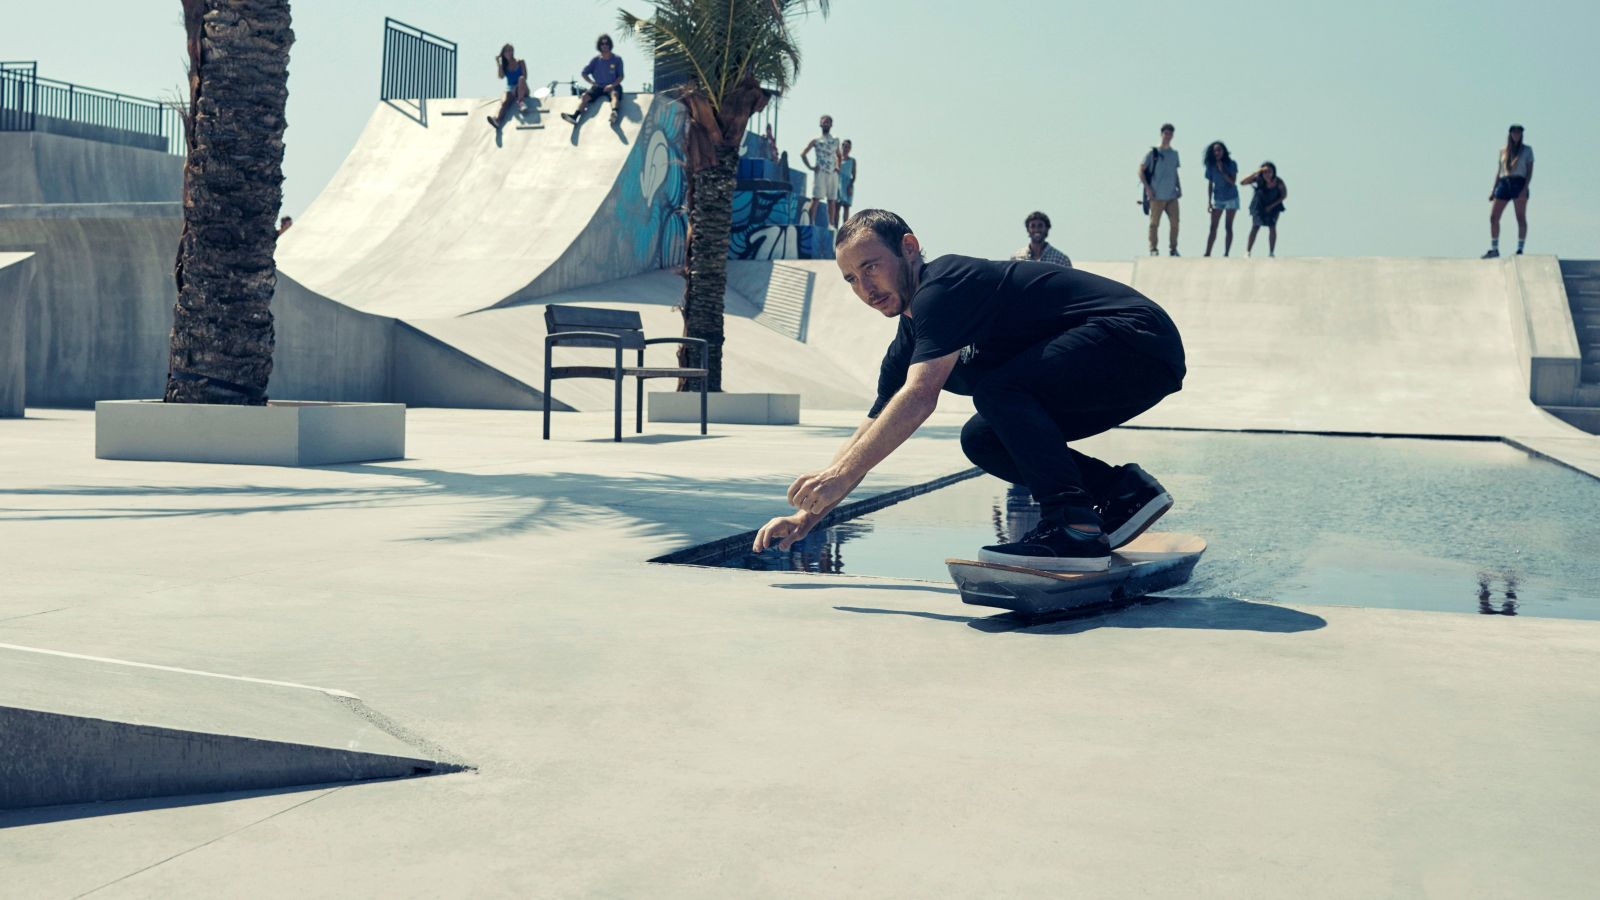 Skateboarder Ross McGouran testing out the Lexus hoverboard in Barcelona.